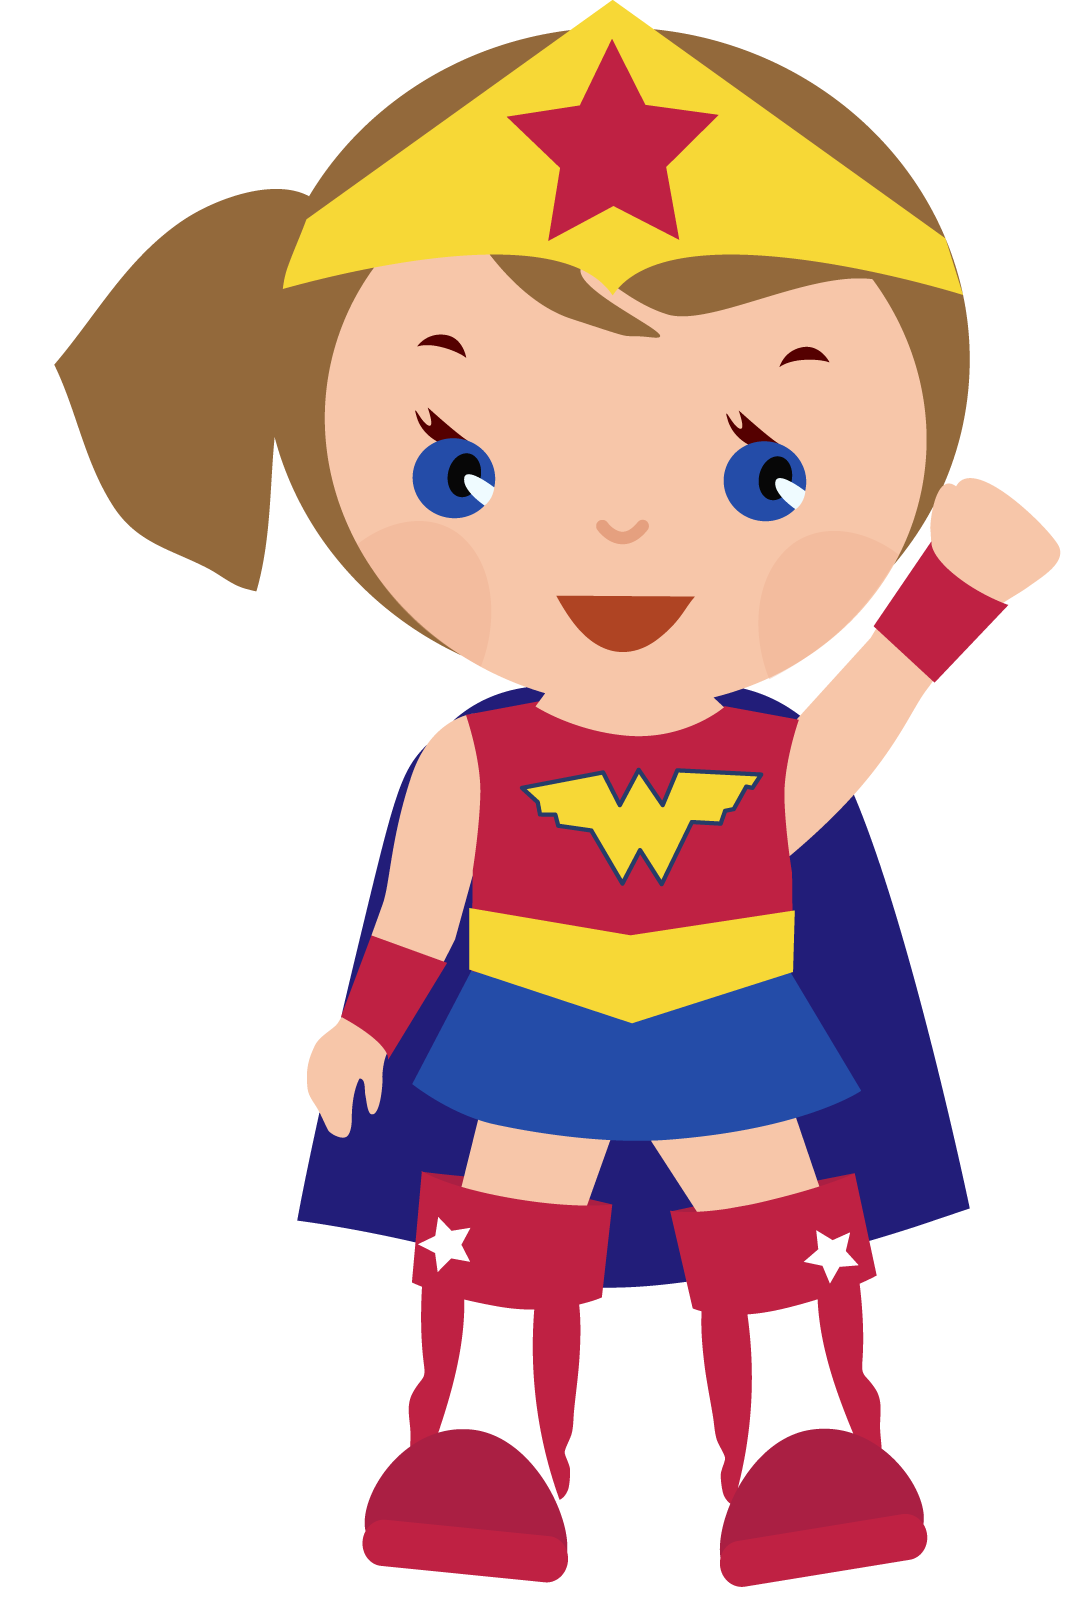 Super hero kids clipart svg transparent download Superhero girl super hero clip art free clipart images clipartcow ... svg transparent download